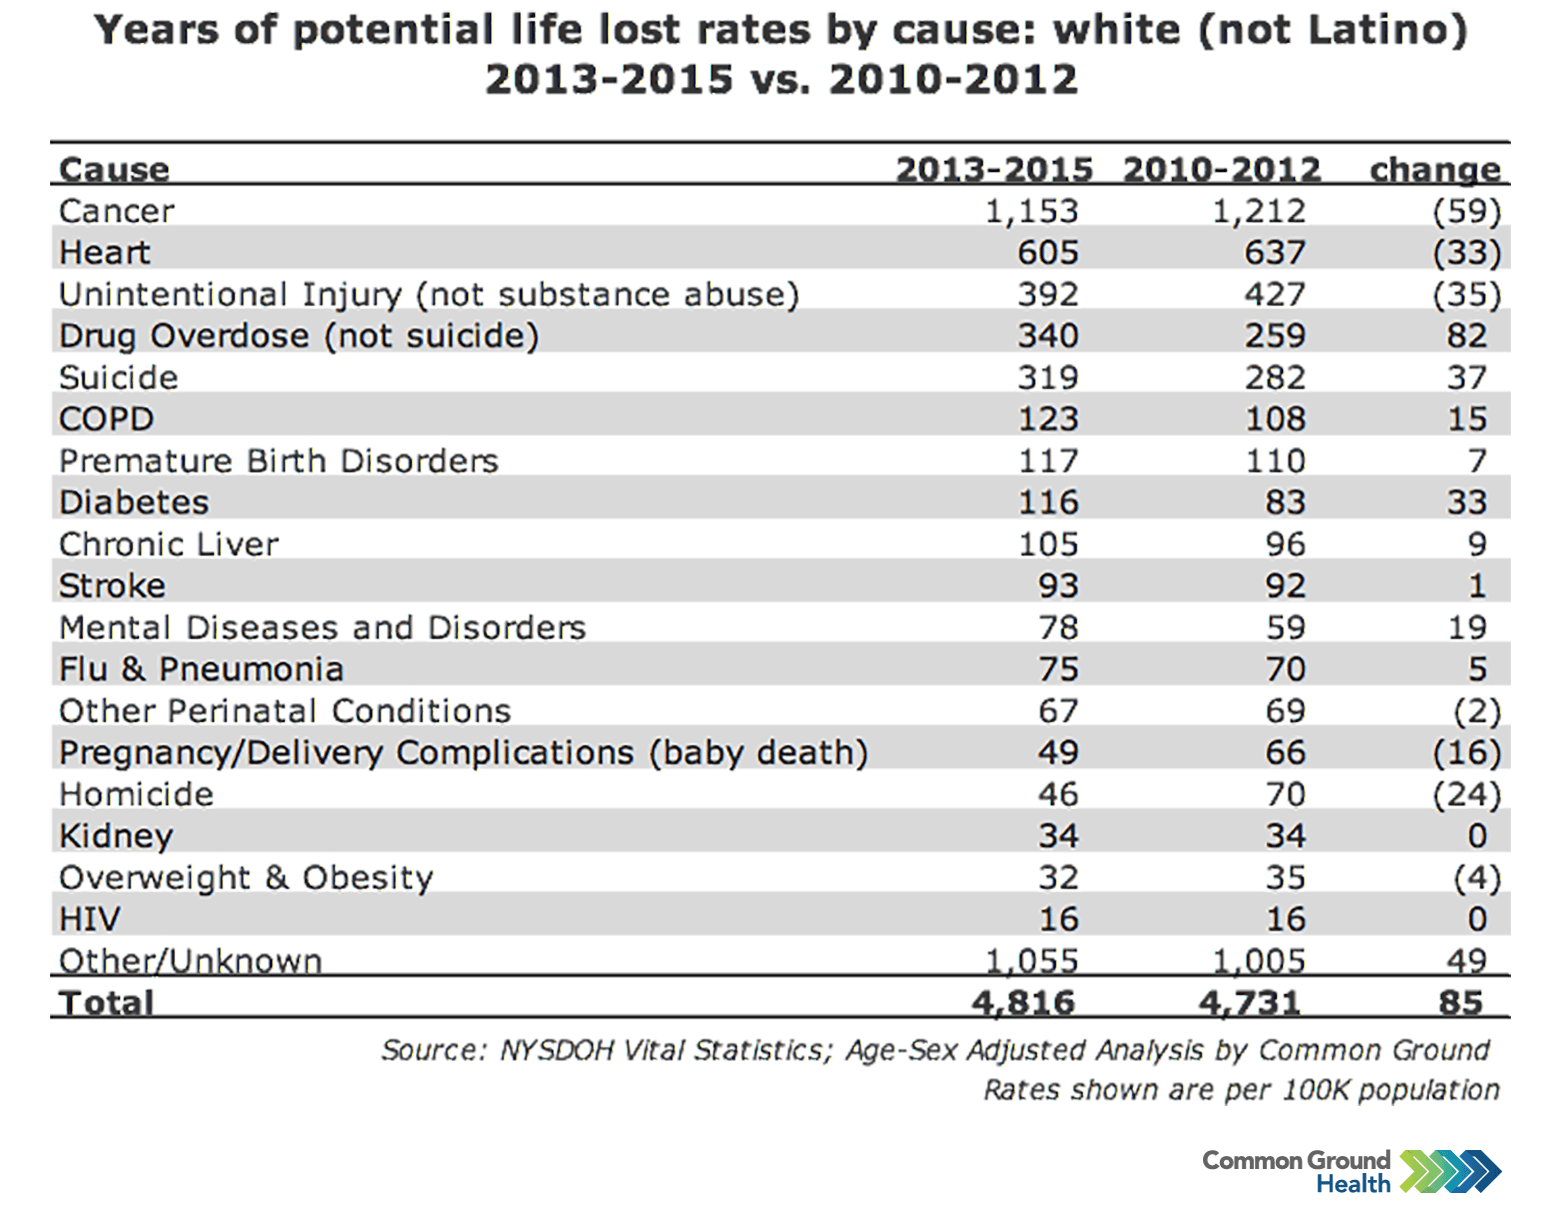 Years of Potential Life Lost Rates vs Cause: White (not Latino)